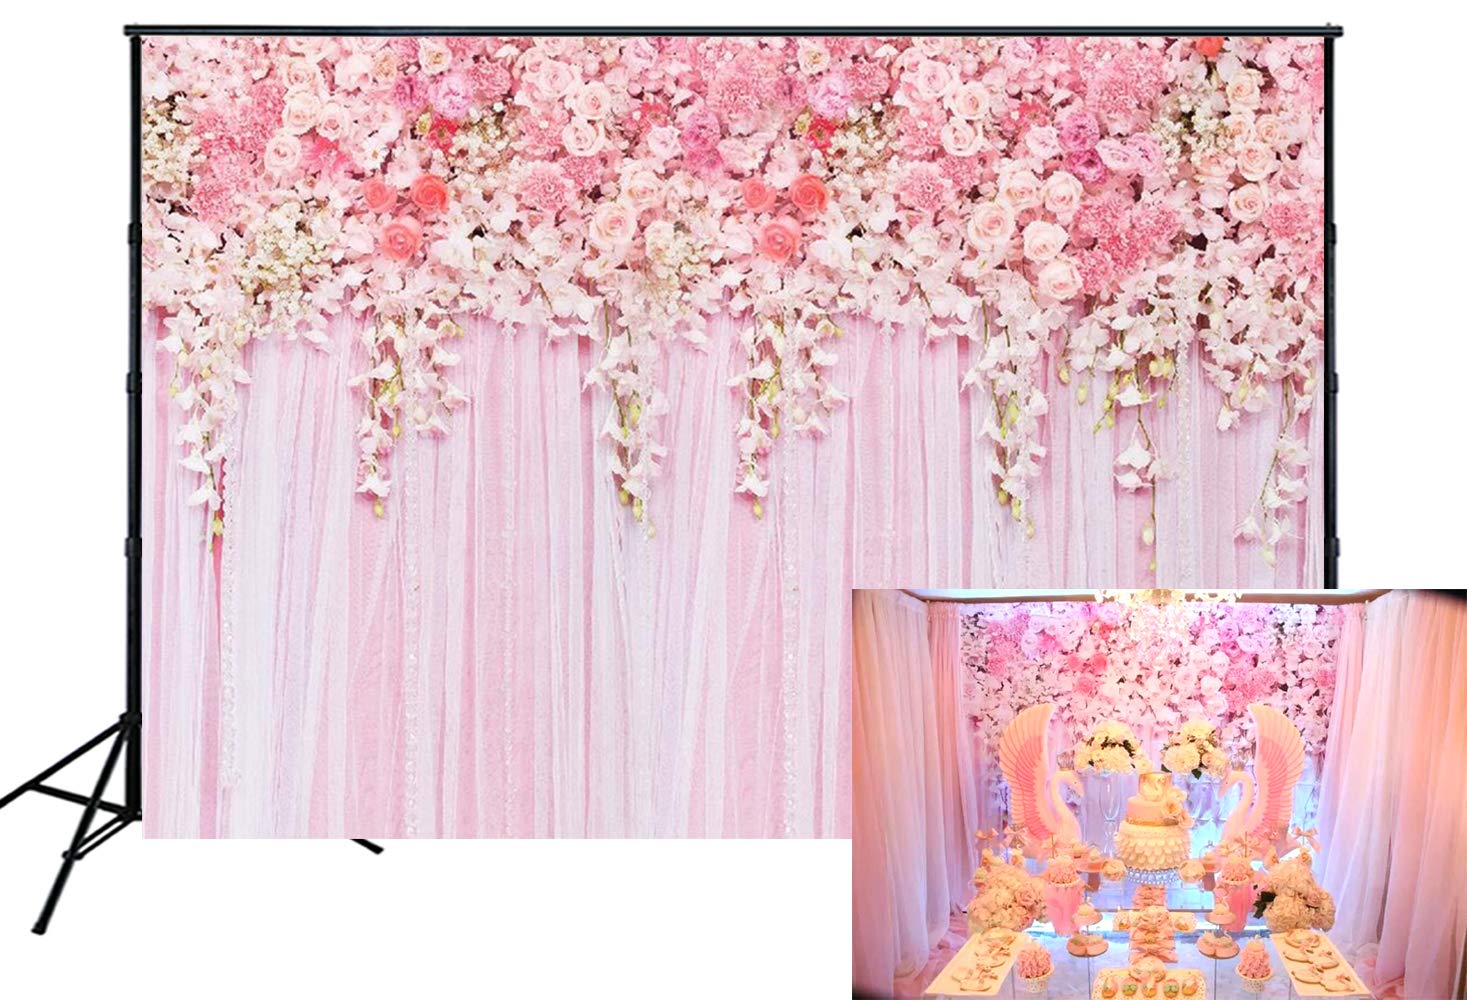 Muzi 7x5ft Pink Floral Backdrop Thin Vinyl Pink Curtain Cake Table Photo Booth Banner Baby Shower Photography Background for Studio Props D-9354